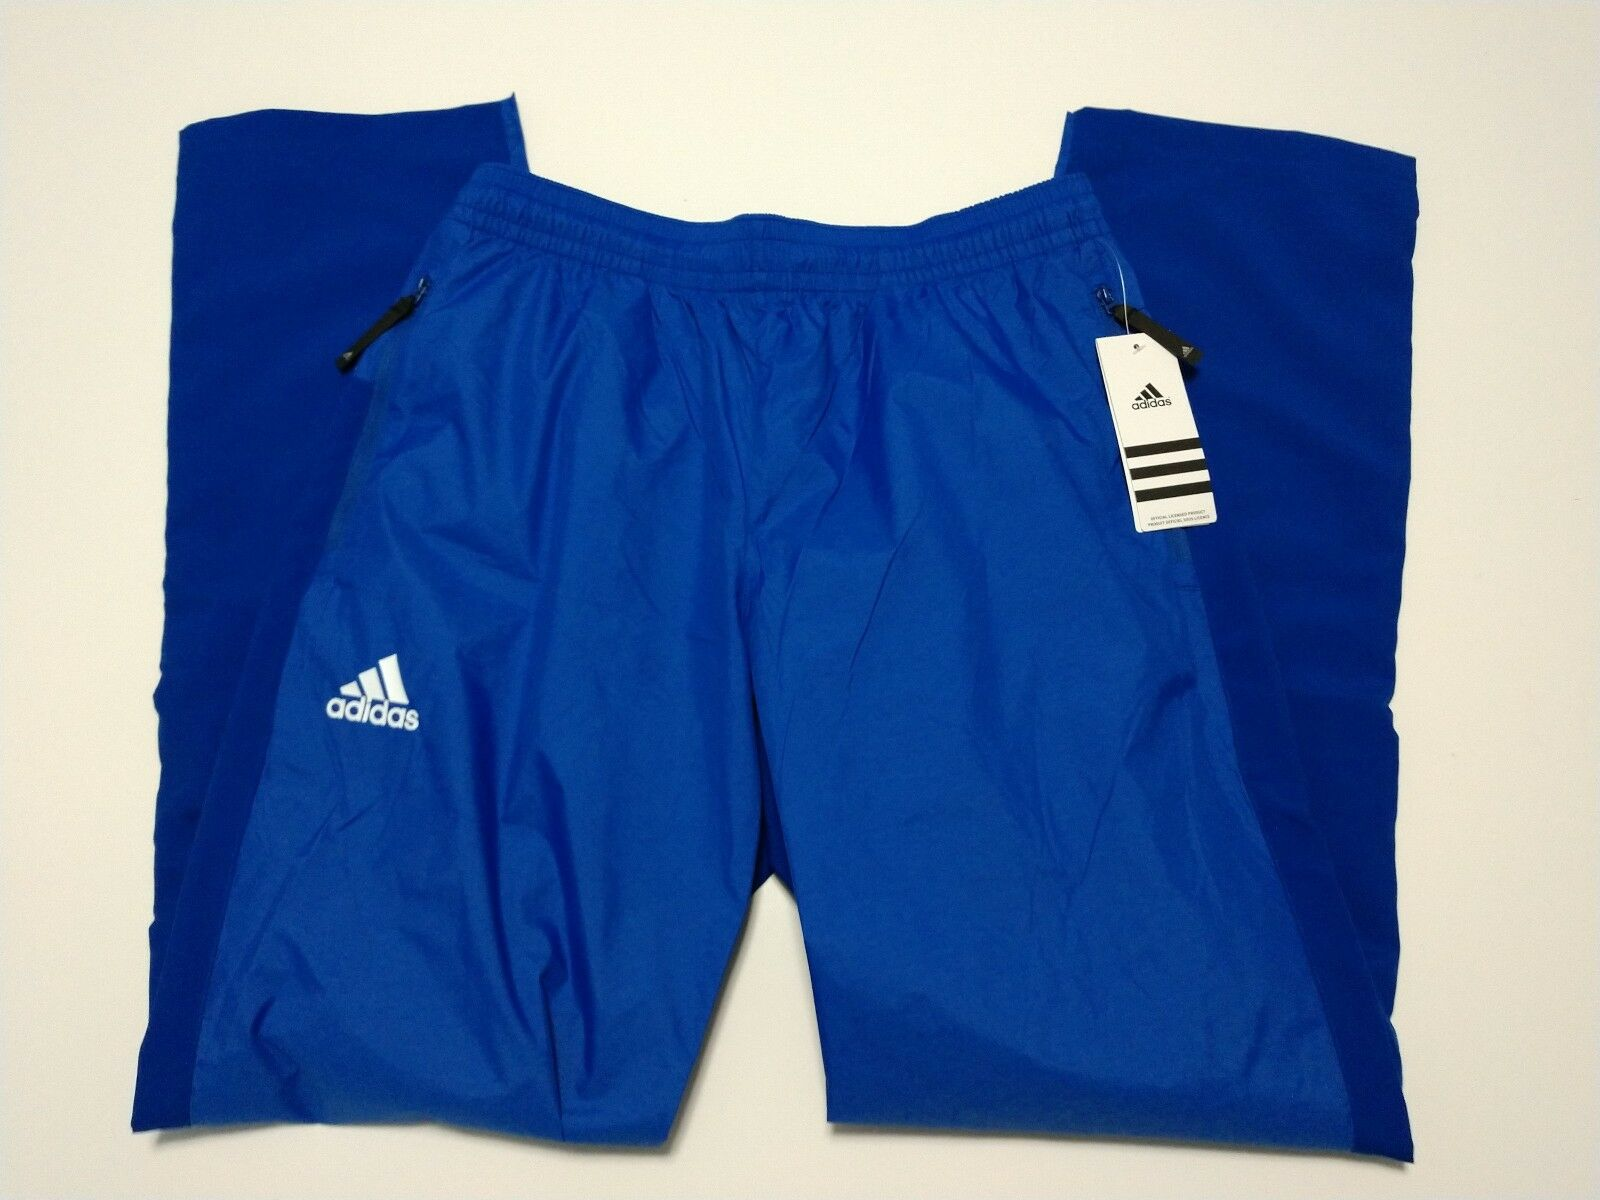 Adidas Womens bluee ATHLETIC NYLON PANTS Small new nwt